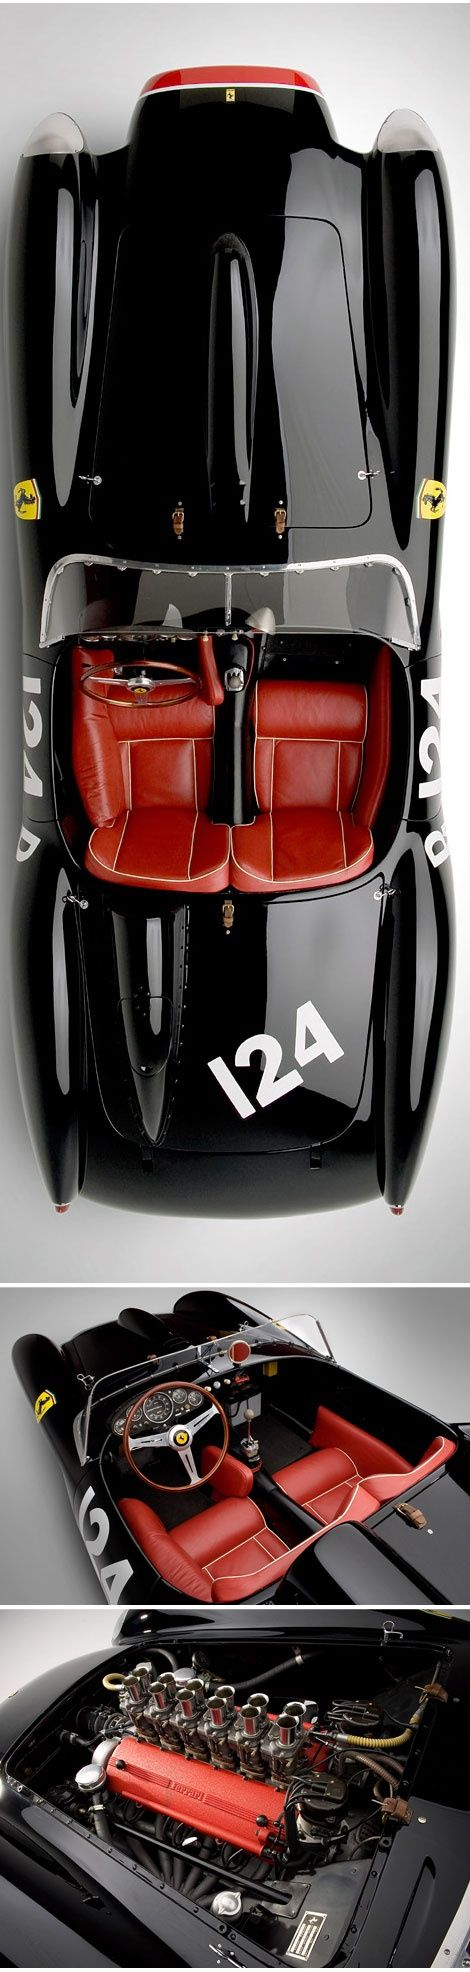 The beautiful #Ferrari 250 TR. One of the classic cool #sportcars found in #eBayGarage. Join today and you could even win a 'life changing' experience  www.ebay.com/motors/garage?_trksid=p2050890.m1616_trkparms=%26clkid%3D6426505341691924708?roken2=ta.p3hwzkq71.bsports-cars-we-love